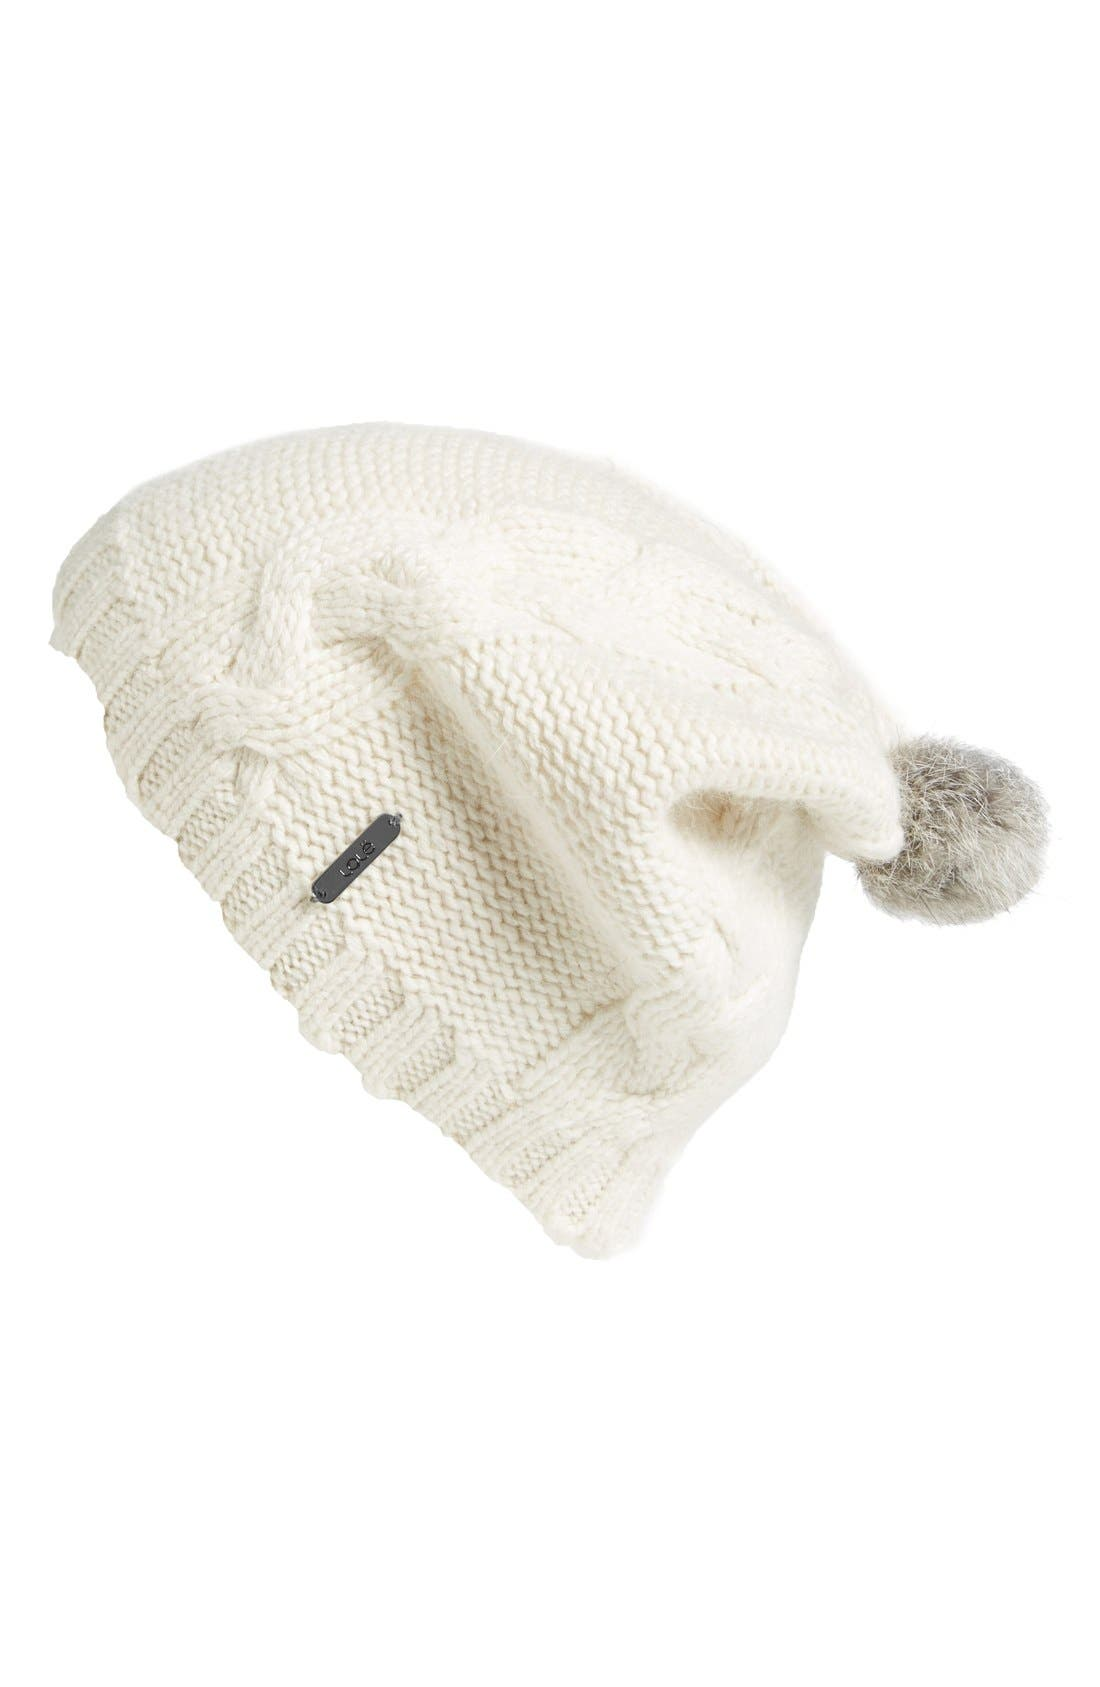 Alternate Image 1 Selected - Lole Cable Knit Beanie